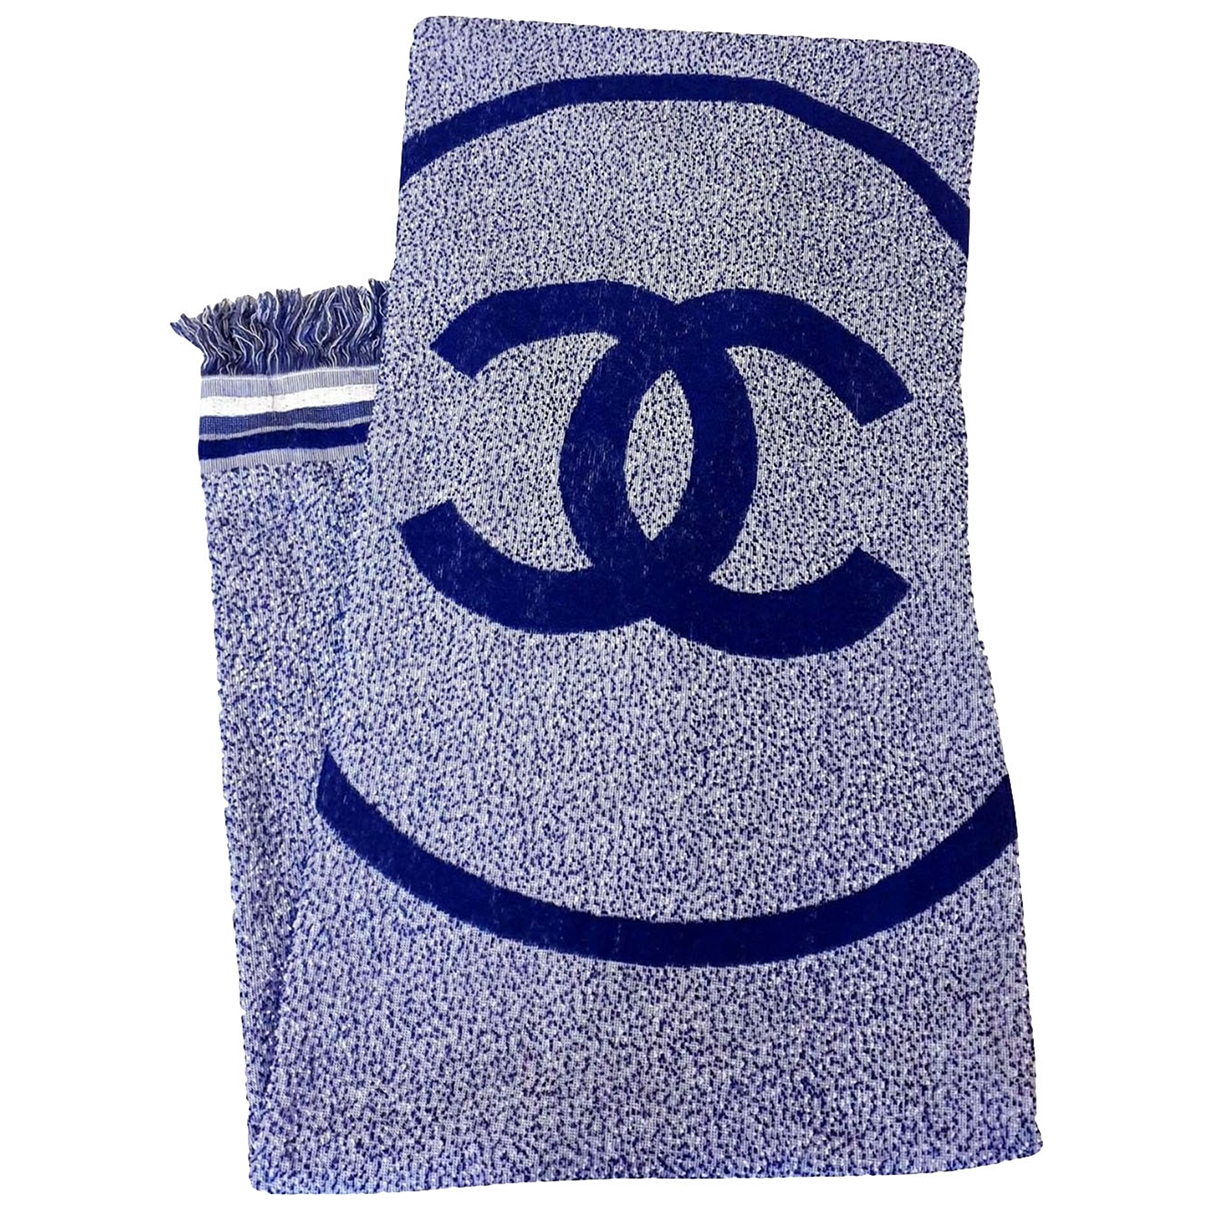 Chanel \N Blue Cotton Textiles for Life & Living \N